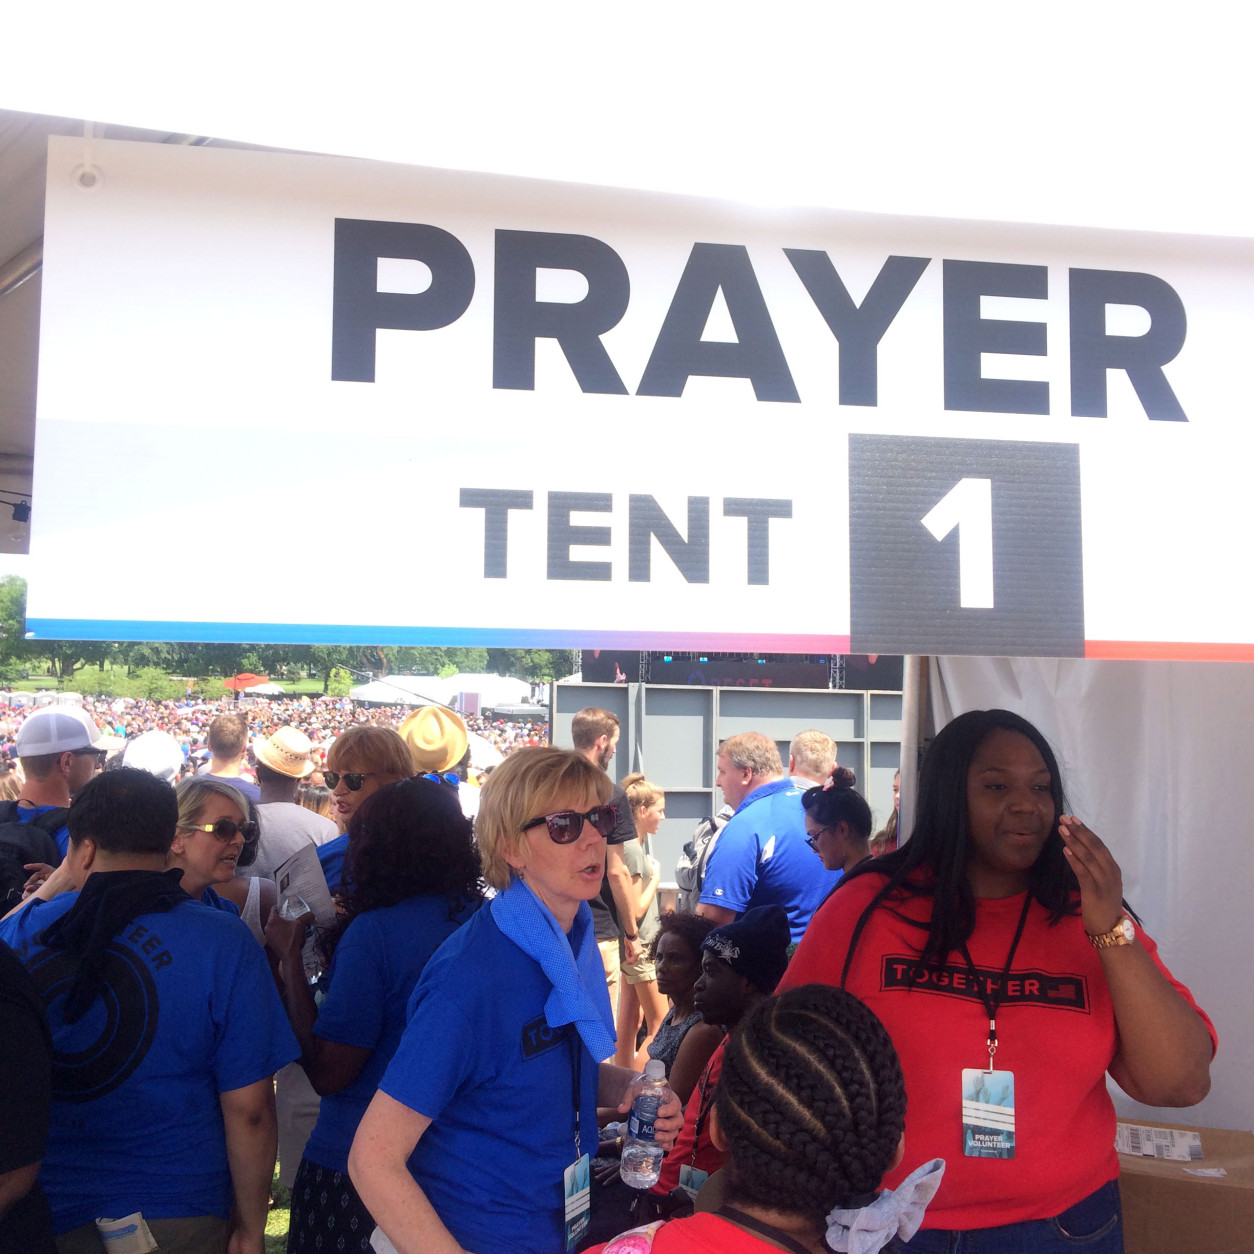 Staff work at a prayer tent during the Together 2016 event Saturday, July 16, 2016. (WTOP/Dick Uliano)